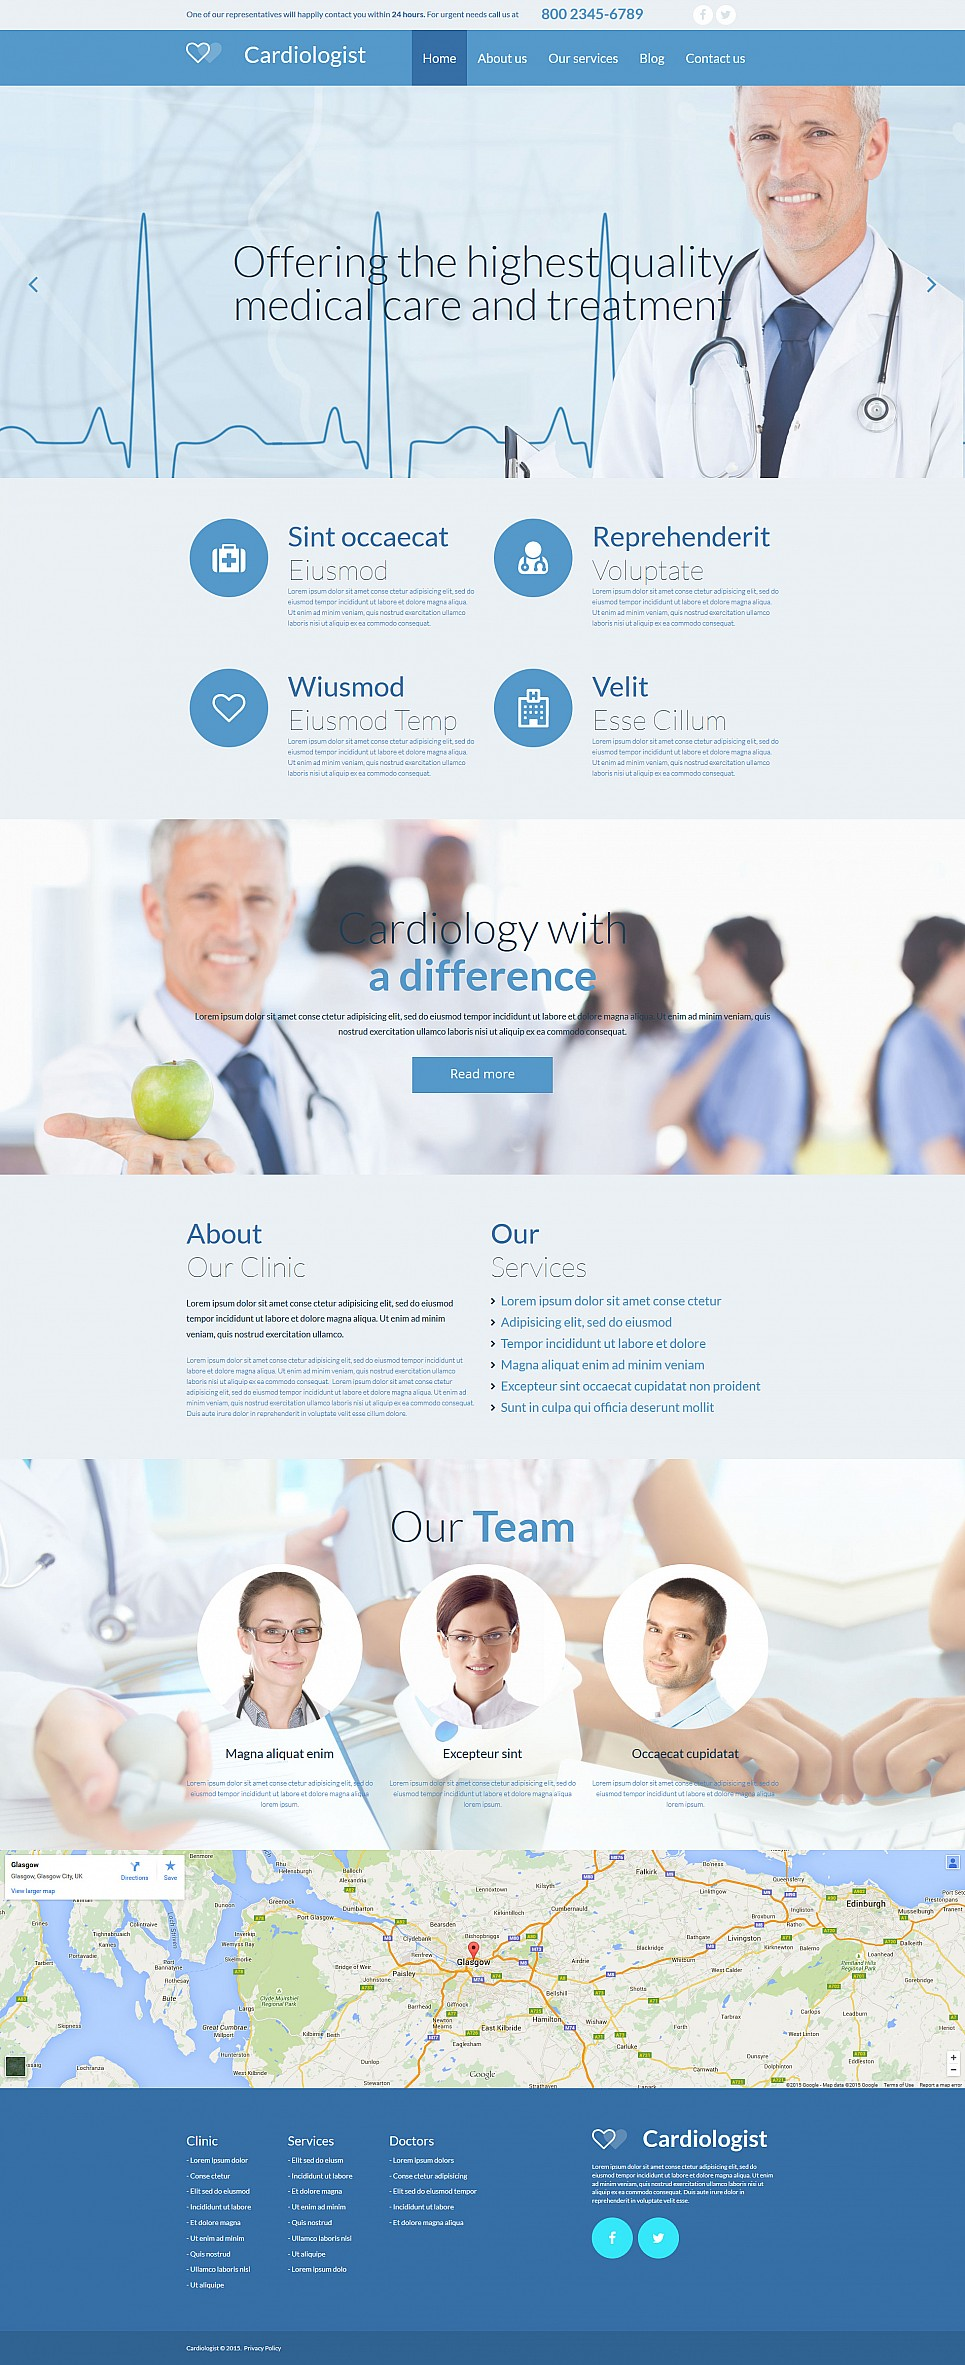 Heart Doctor Website Design - image